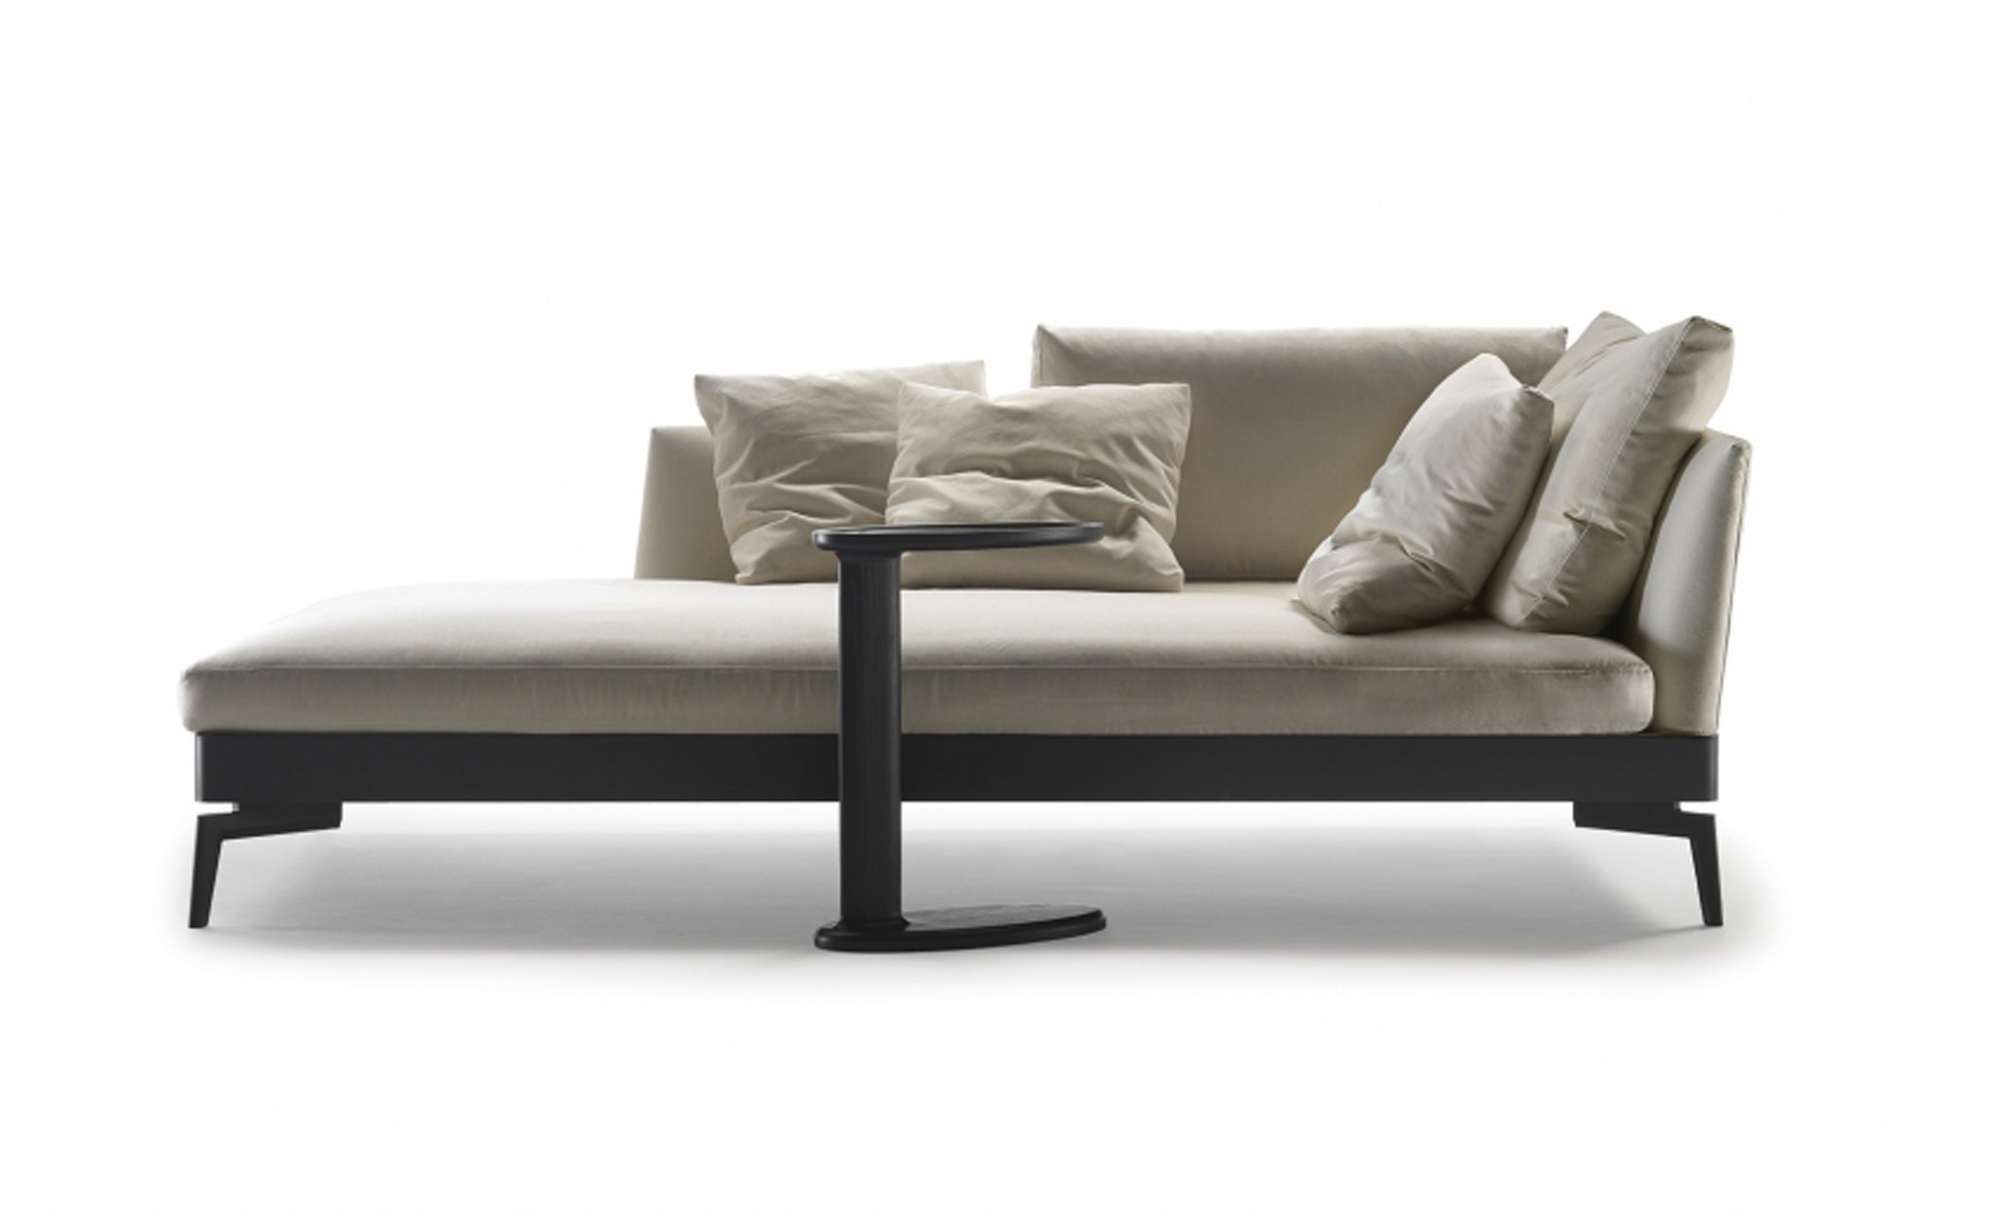 Feelgood sofabeds and chaises fanuli furniture for Chaise sofa bed